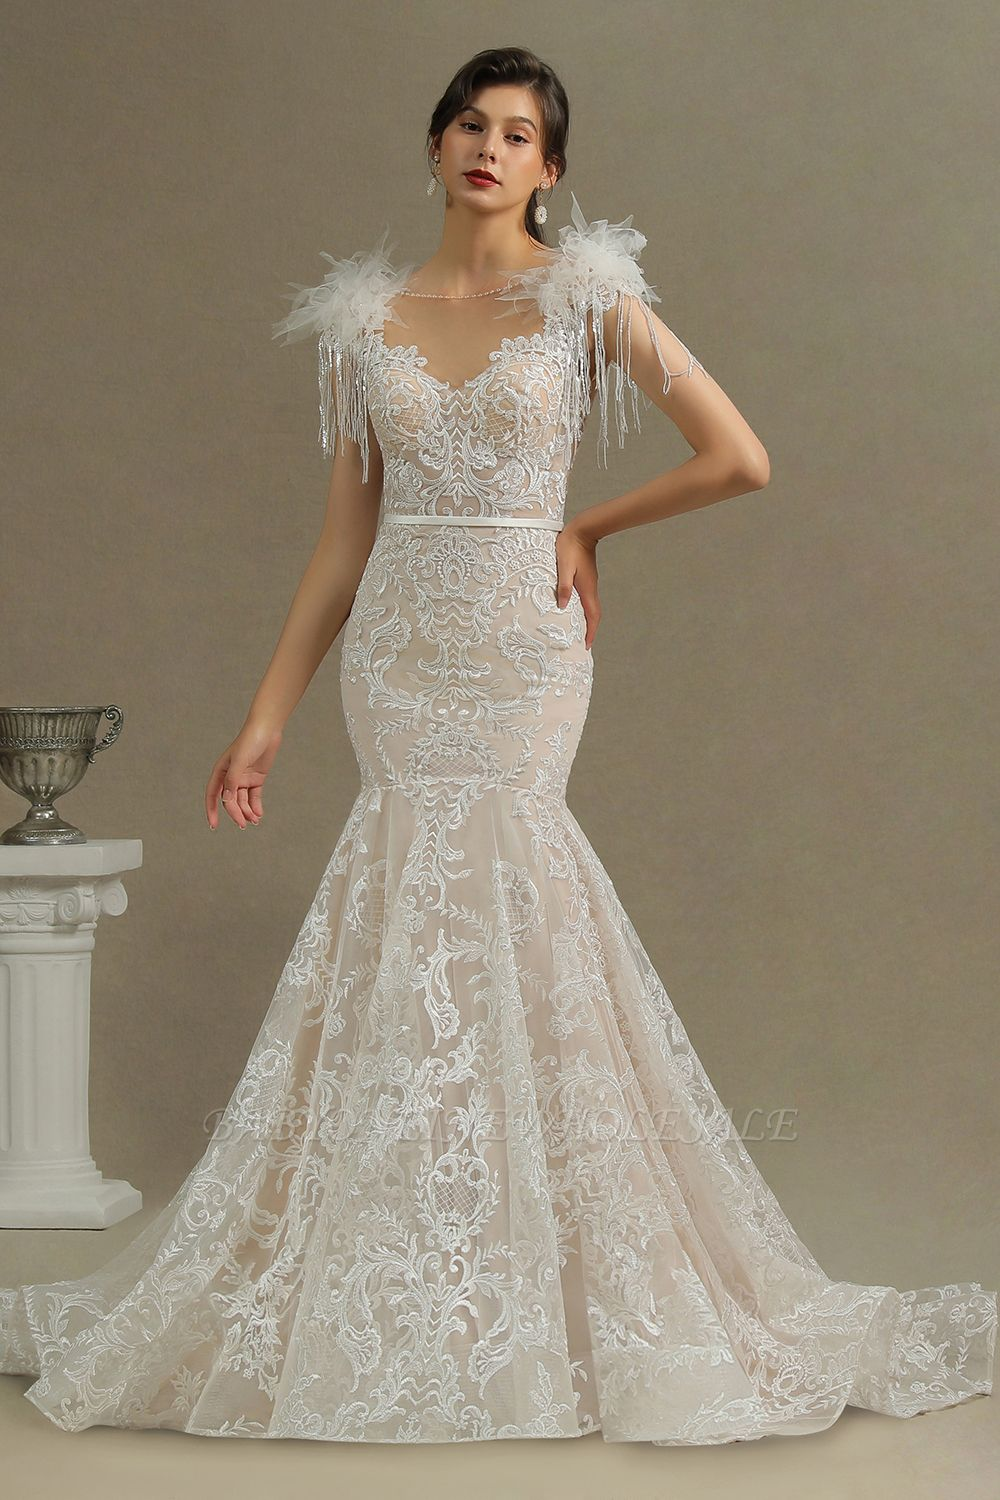 Glamorous Lace Appliques Mermaid Wedding Gown Fur Leather Off Shoulder V-Neck Maxi Dress for Bride